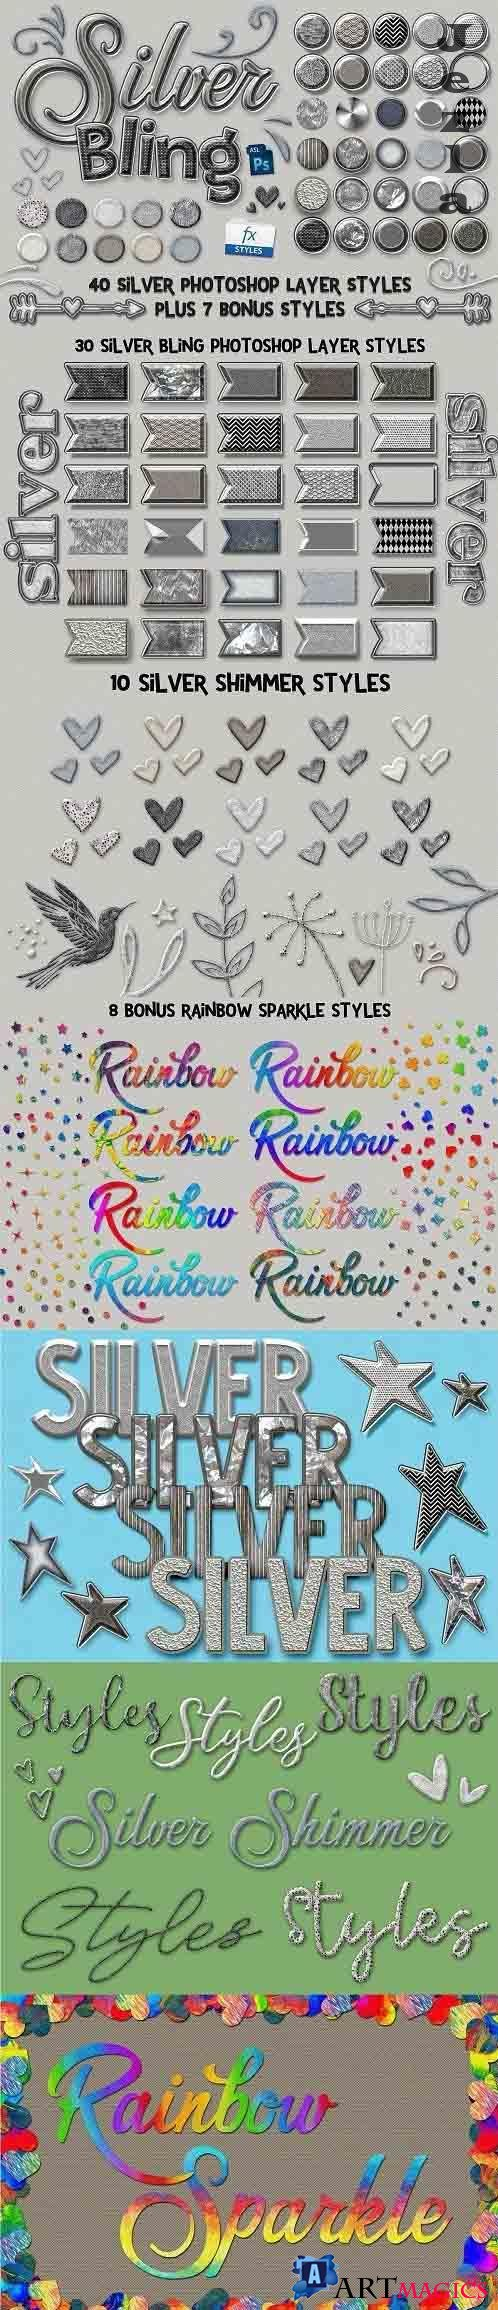 CreativeMarket - Silver Bling Photoshop Layer Styles 5115002